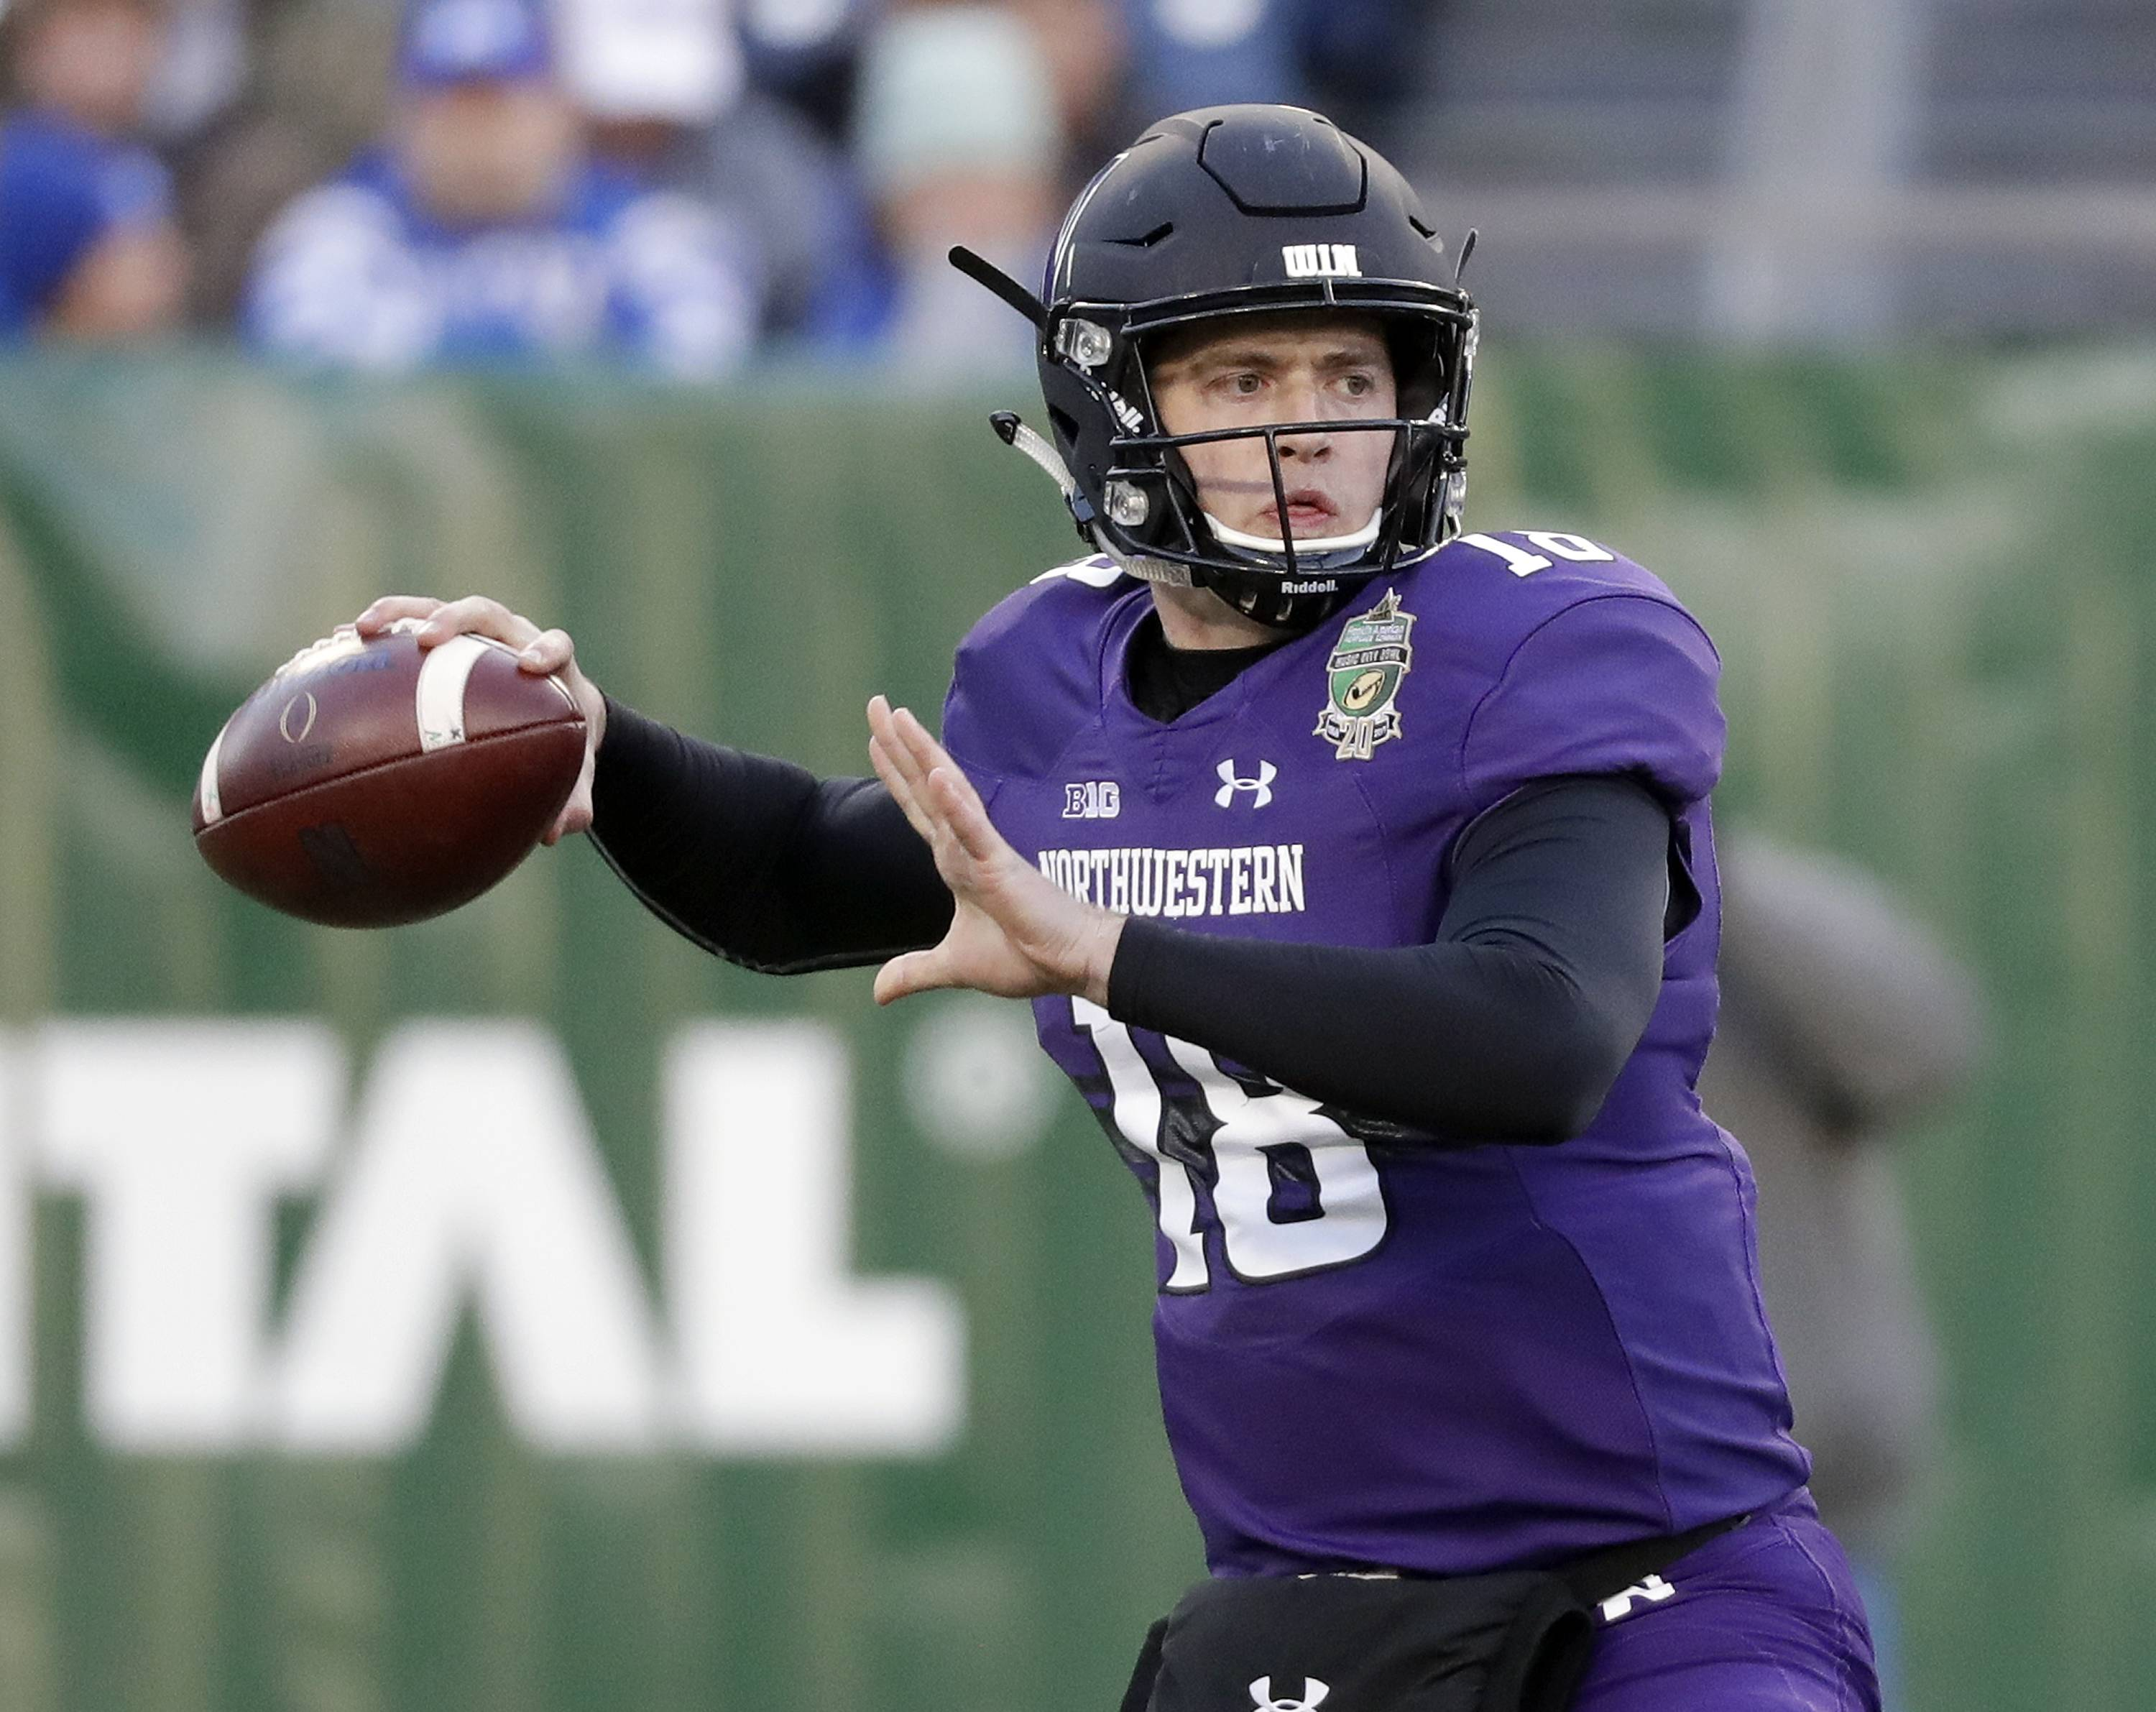 No official starter named, but Northwestern's QB is not a mystery